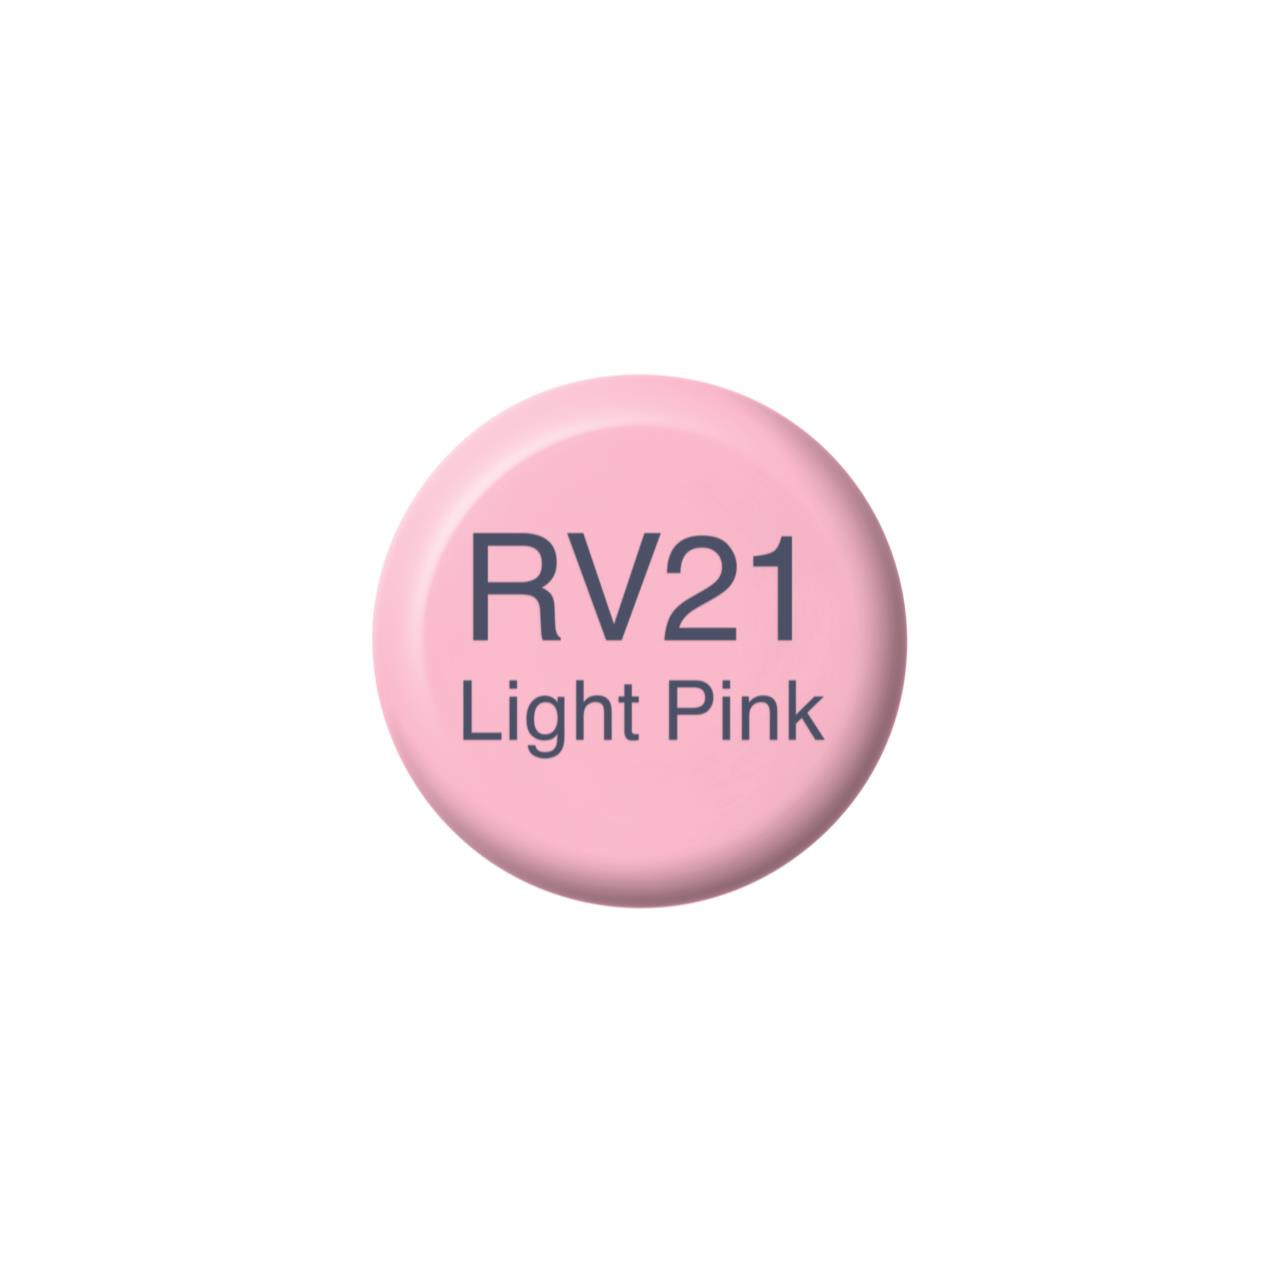 RV21 Light Pink, Copic Ink - 4511338057797